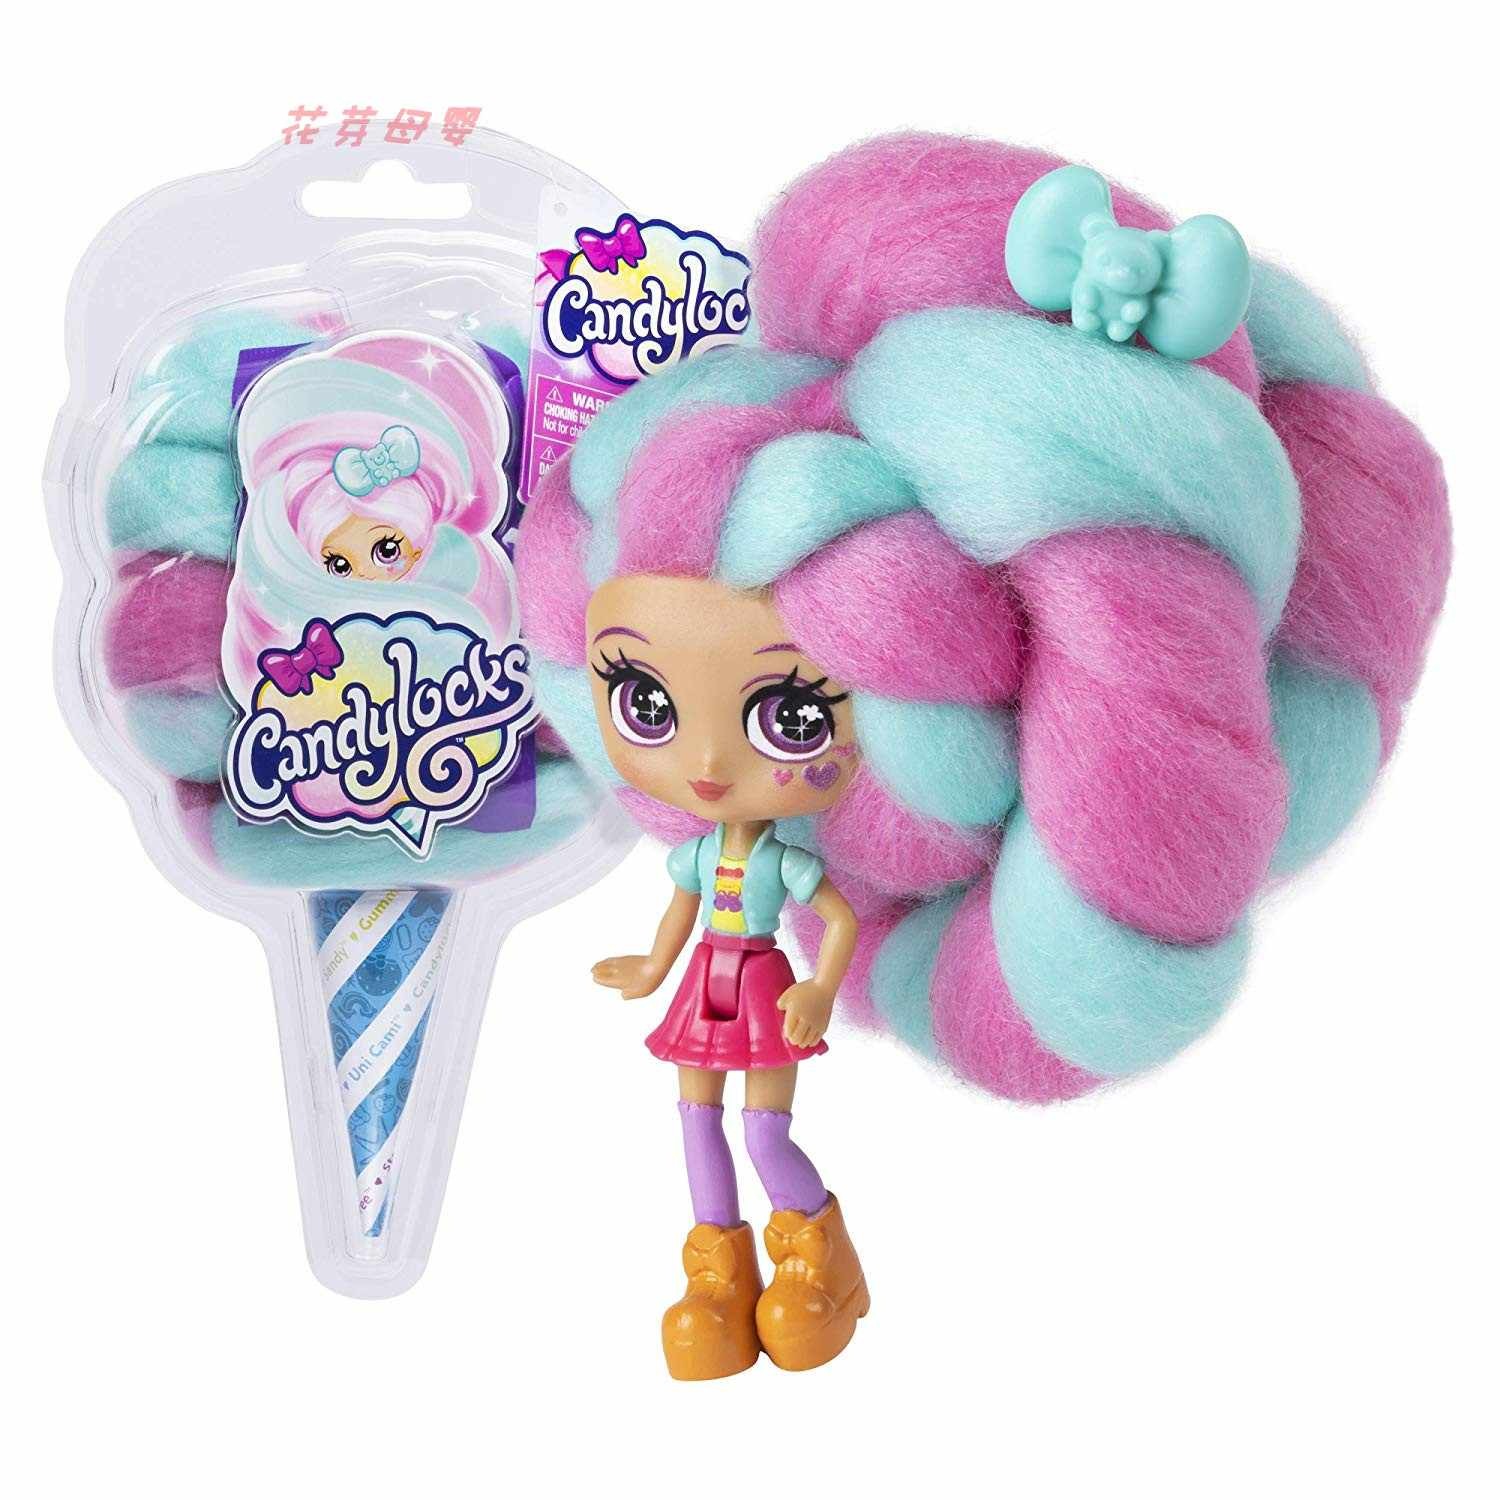 Reissue Candylockse Sweet Treat Toys Hobbies Dolls Accessories Marshmallow Hair 30cm Surprise Hairstyle with Scented Doll